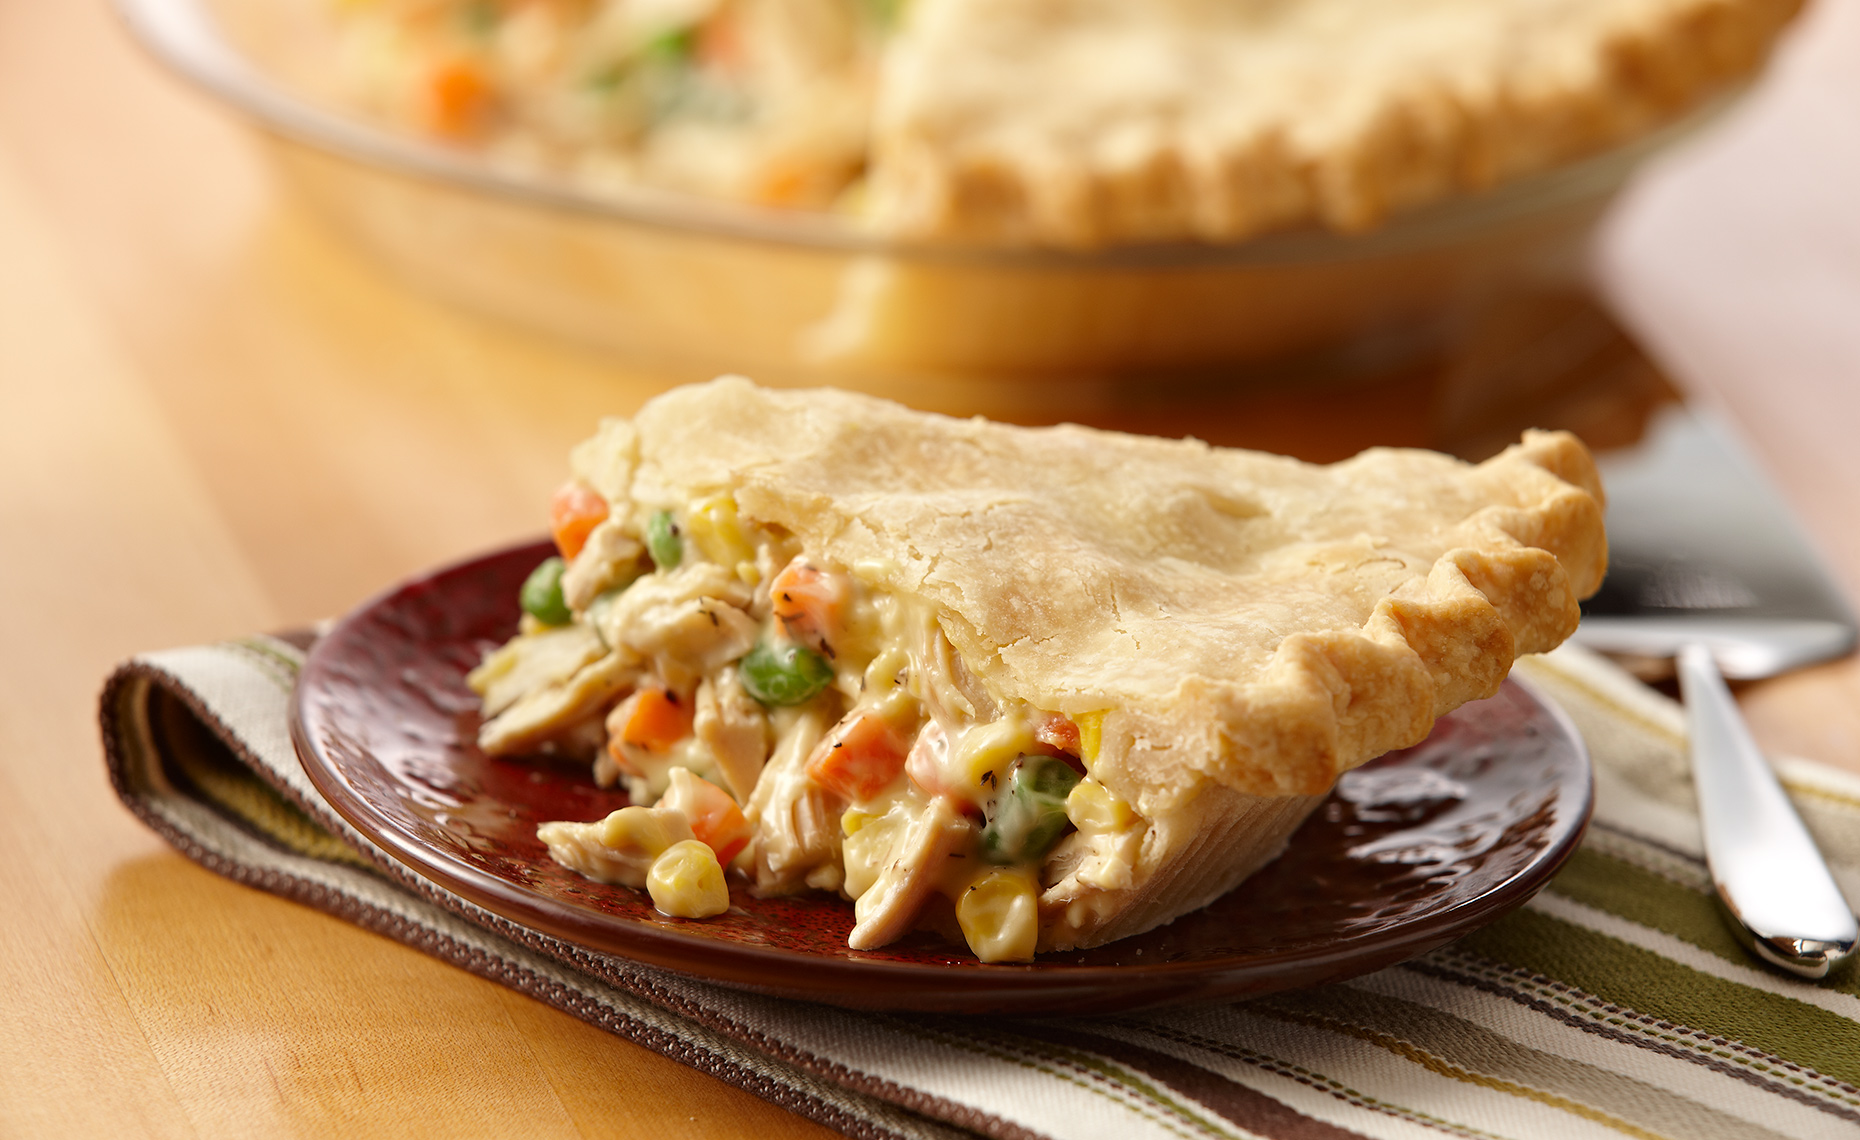 Food Photographer, Bread Photography, Pastry Photography, Dessert Photography | Pohuski Studios,  Chicken Pot Pie